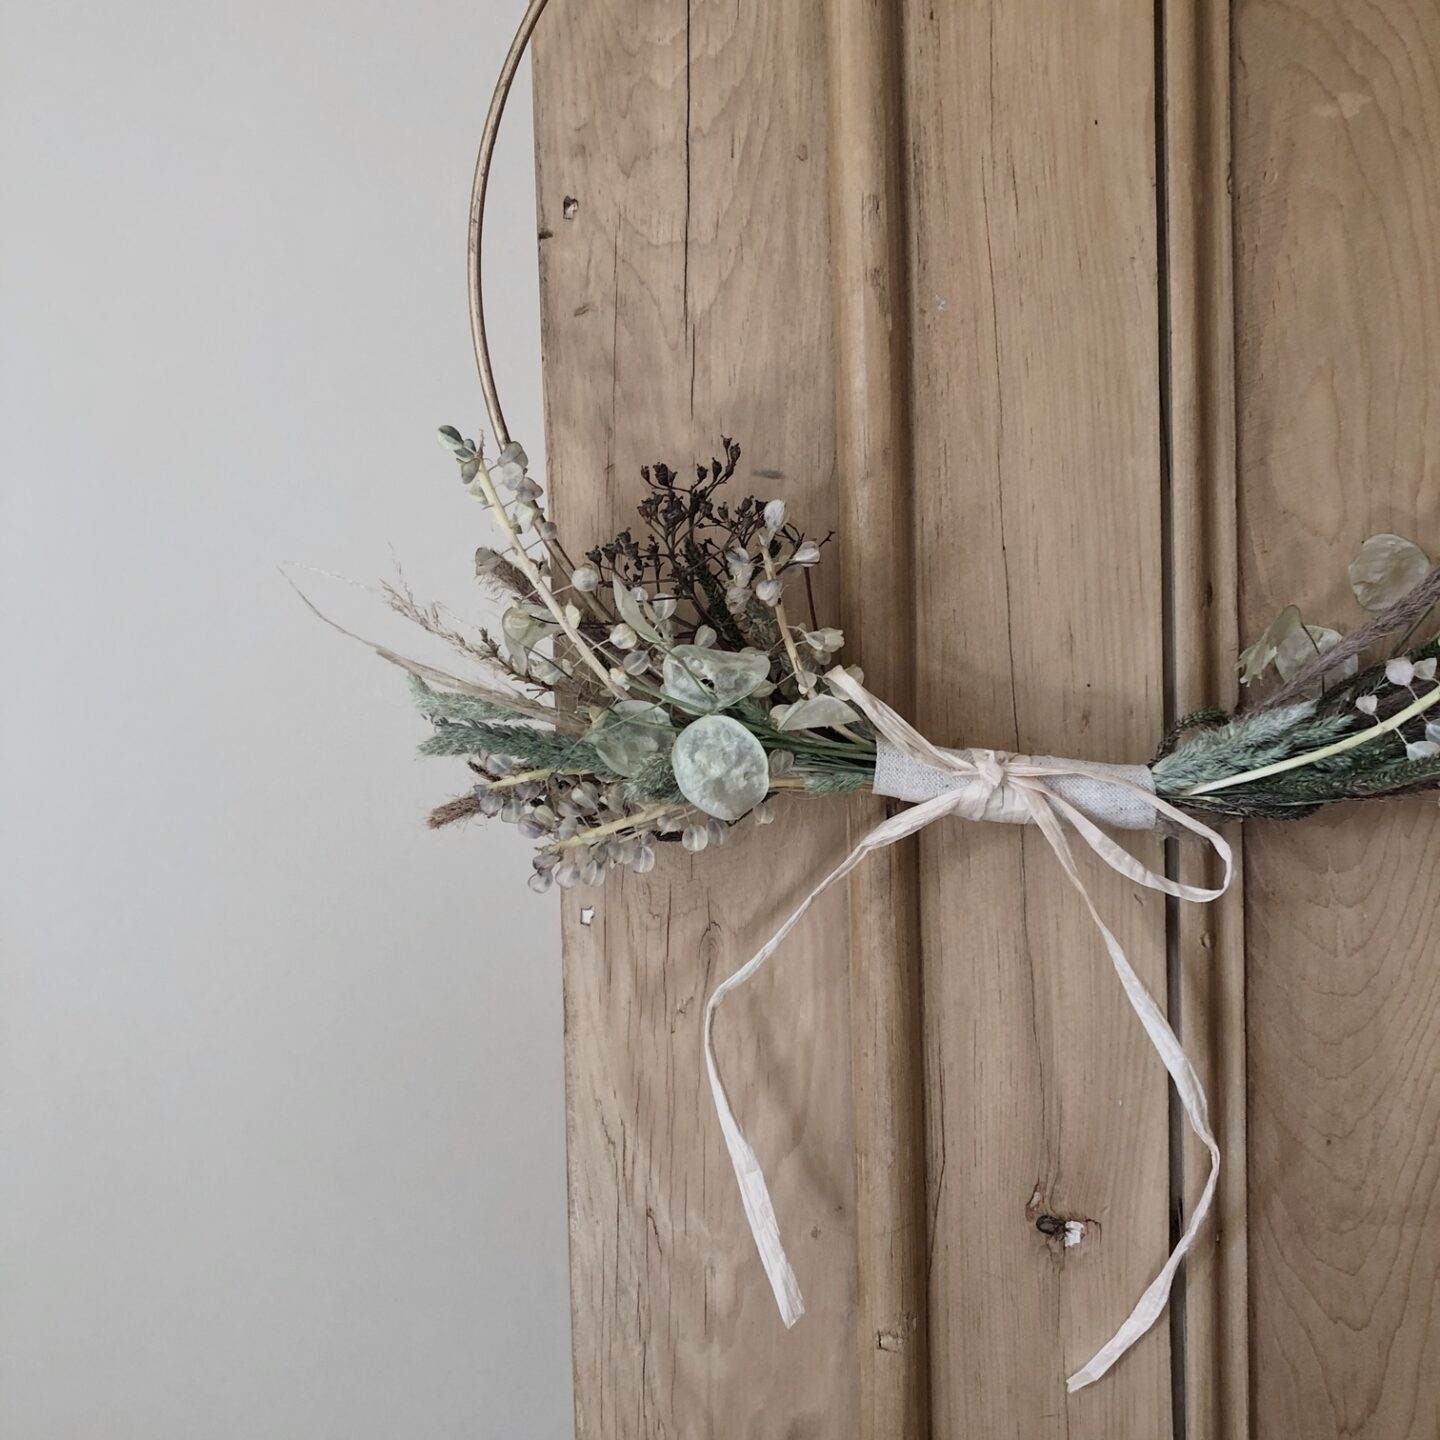 Dried flower wreath hanging against cupboard